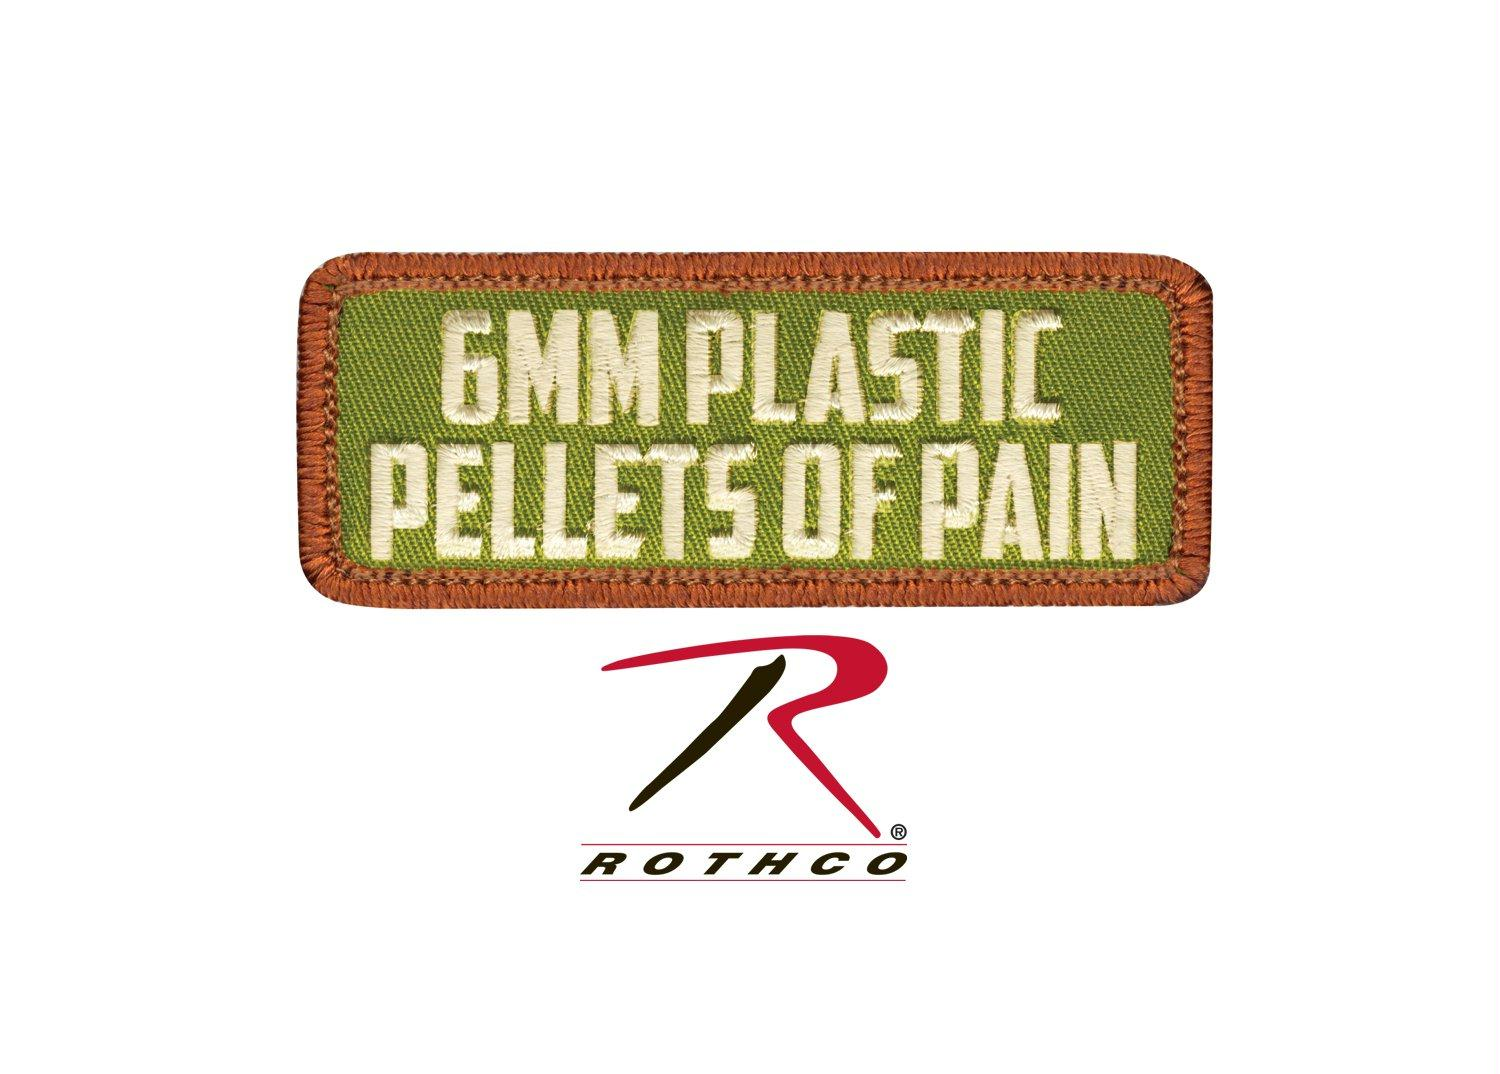 Rothco Pellets of Pain Morale Patch